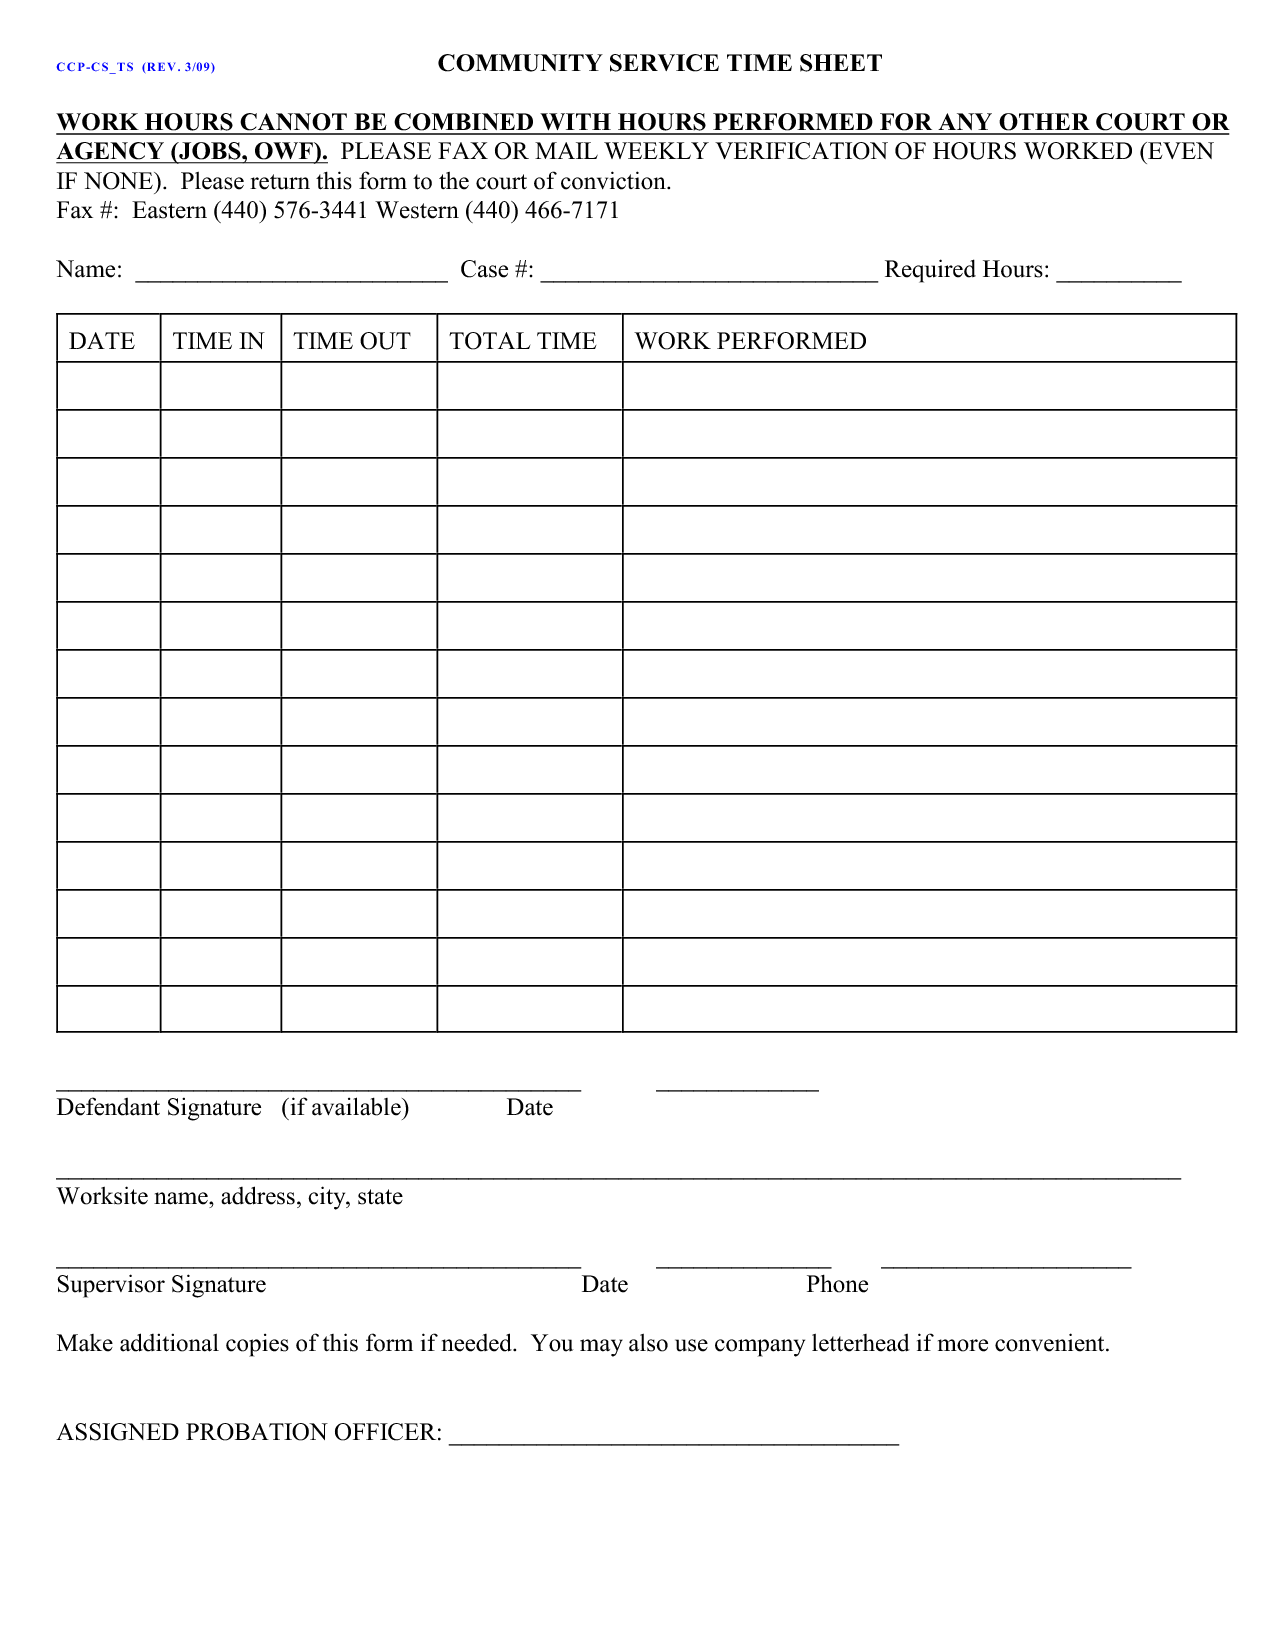 community service hours sheet for court Court Ordered Community Service Form | ... community service hours ...